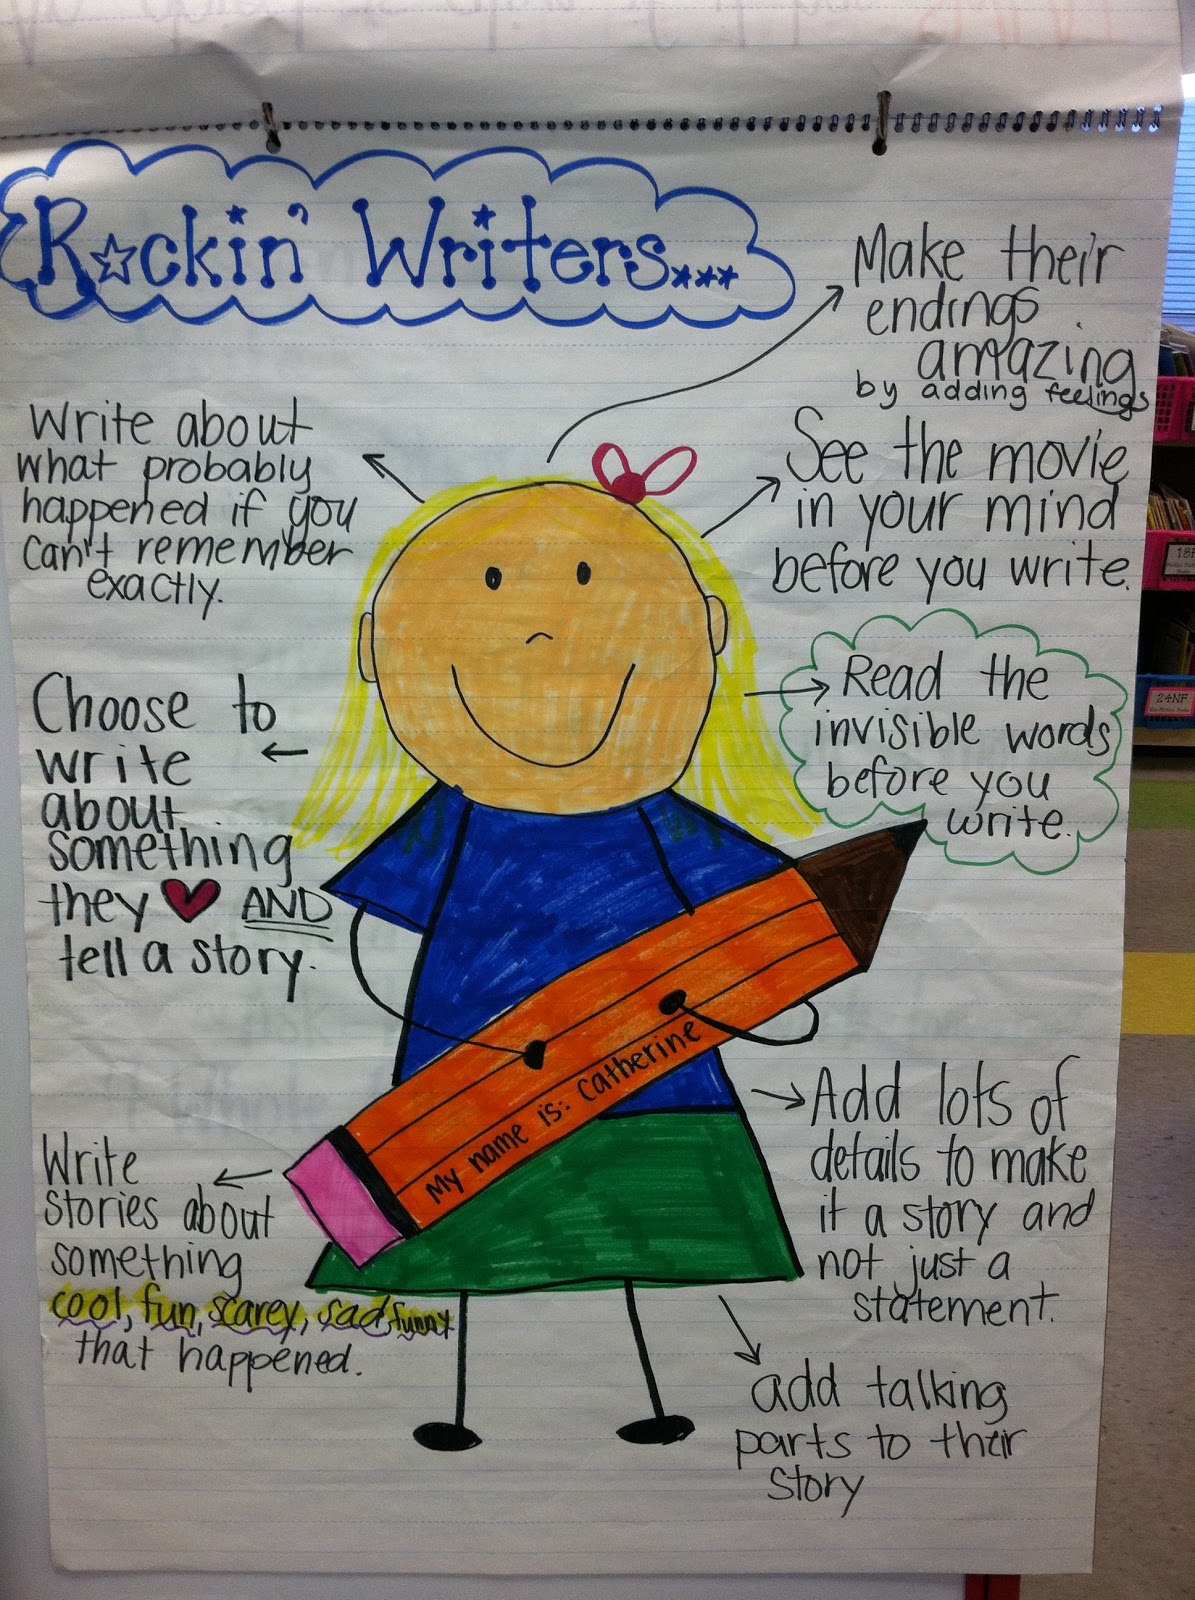 writers workshop Find and save ideas about writers workshop notebook on pinterest | see more ideas about writing anchor charts, writing workshop and teaching writing.